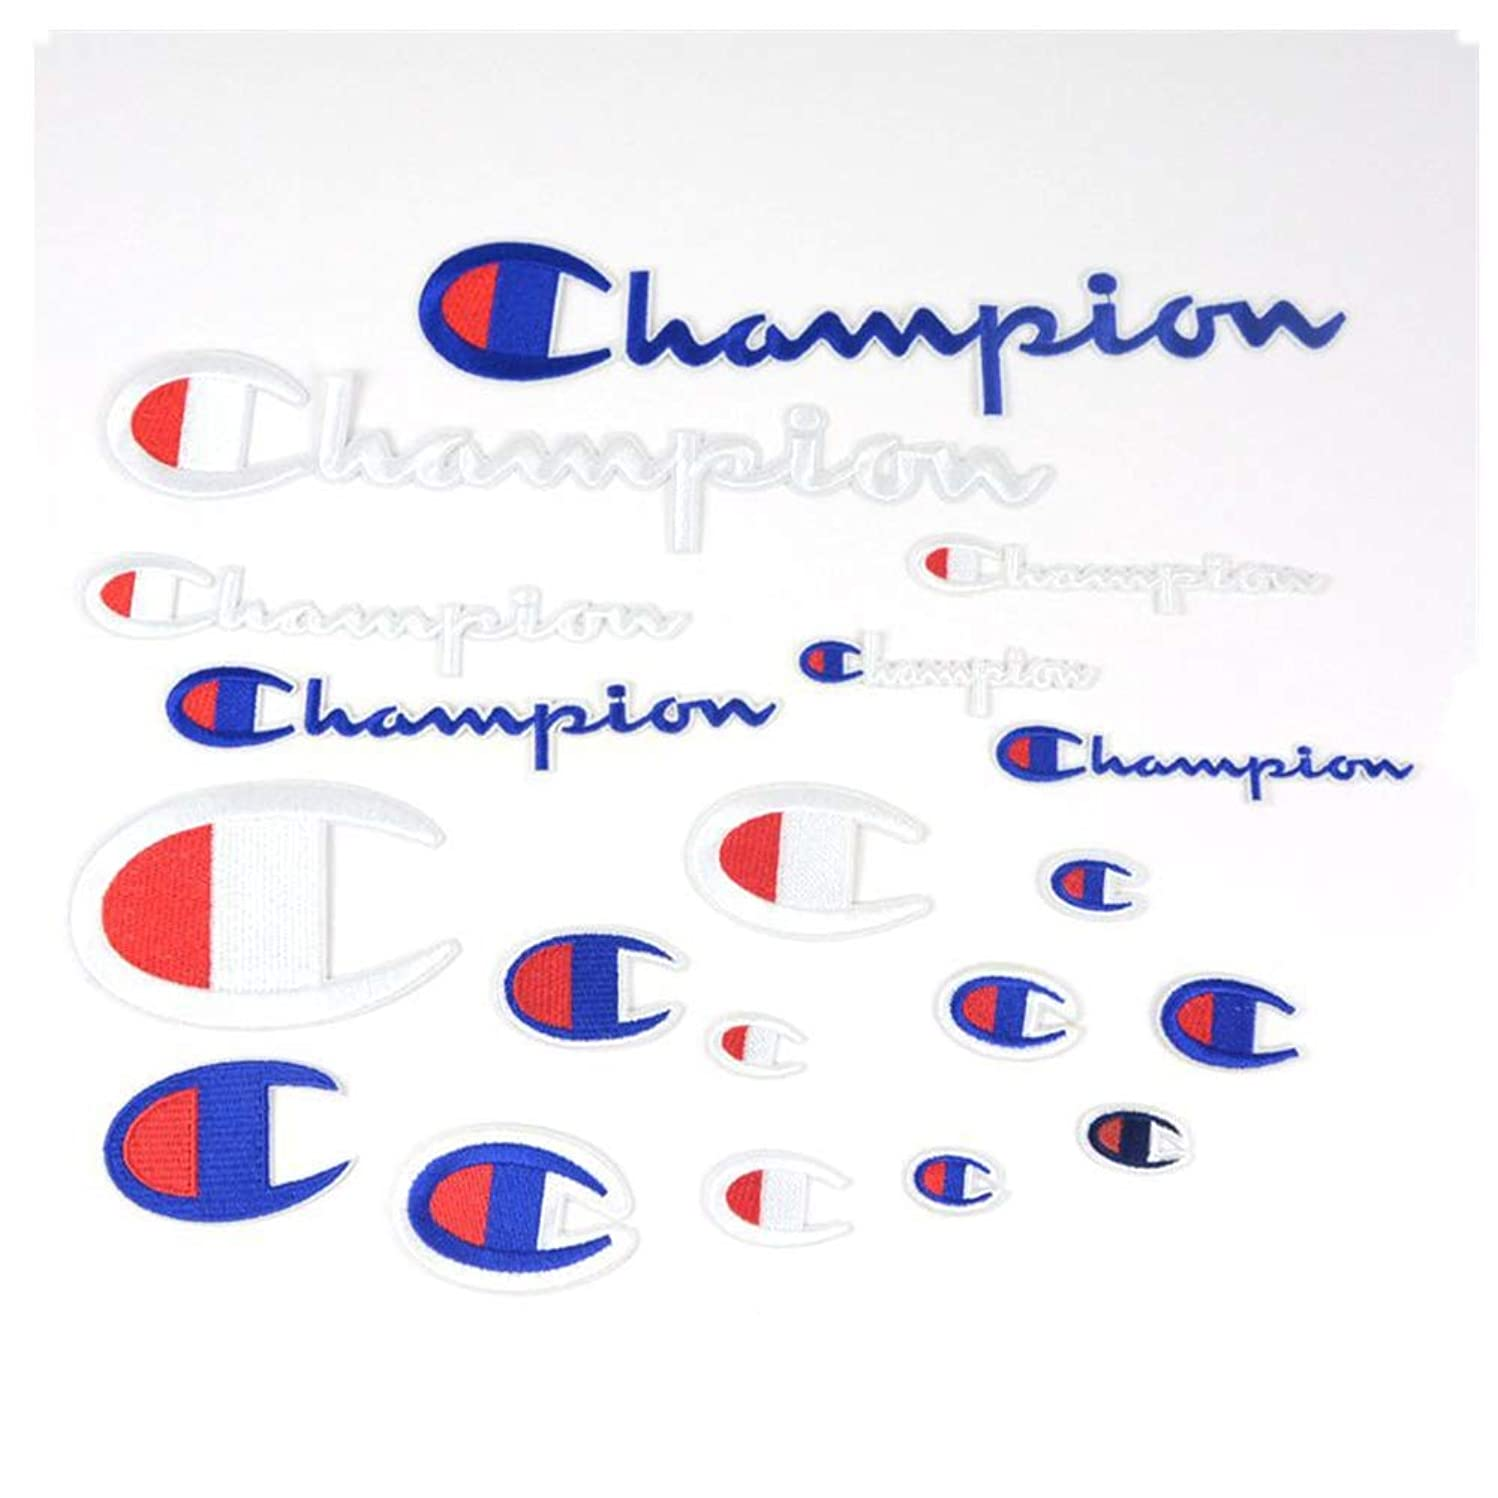 19 Pack Champion Patches Multi Size Patch Set Sew on or Iron on Embroidered DIY Applique Emblem Badge Decorative